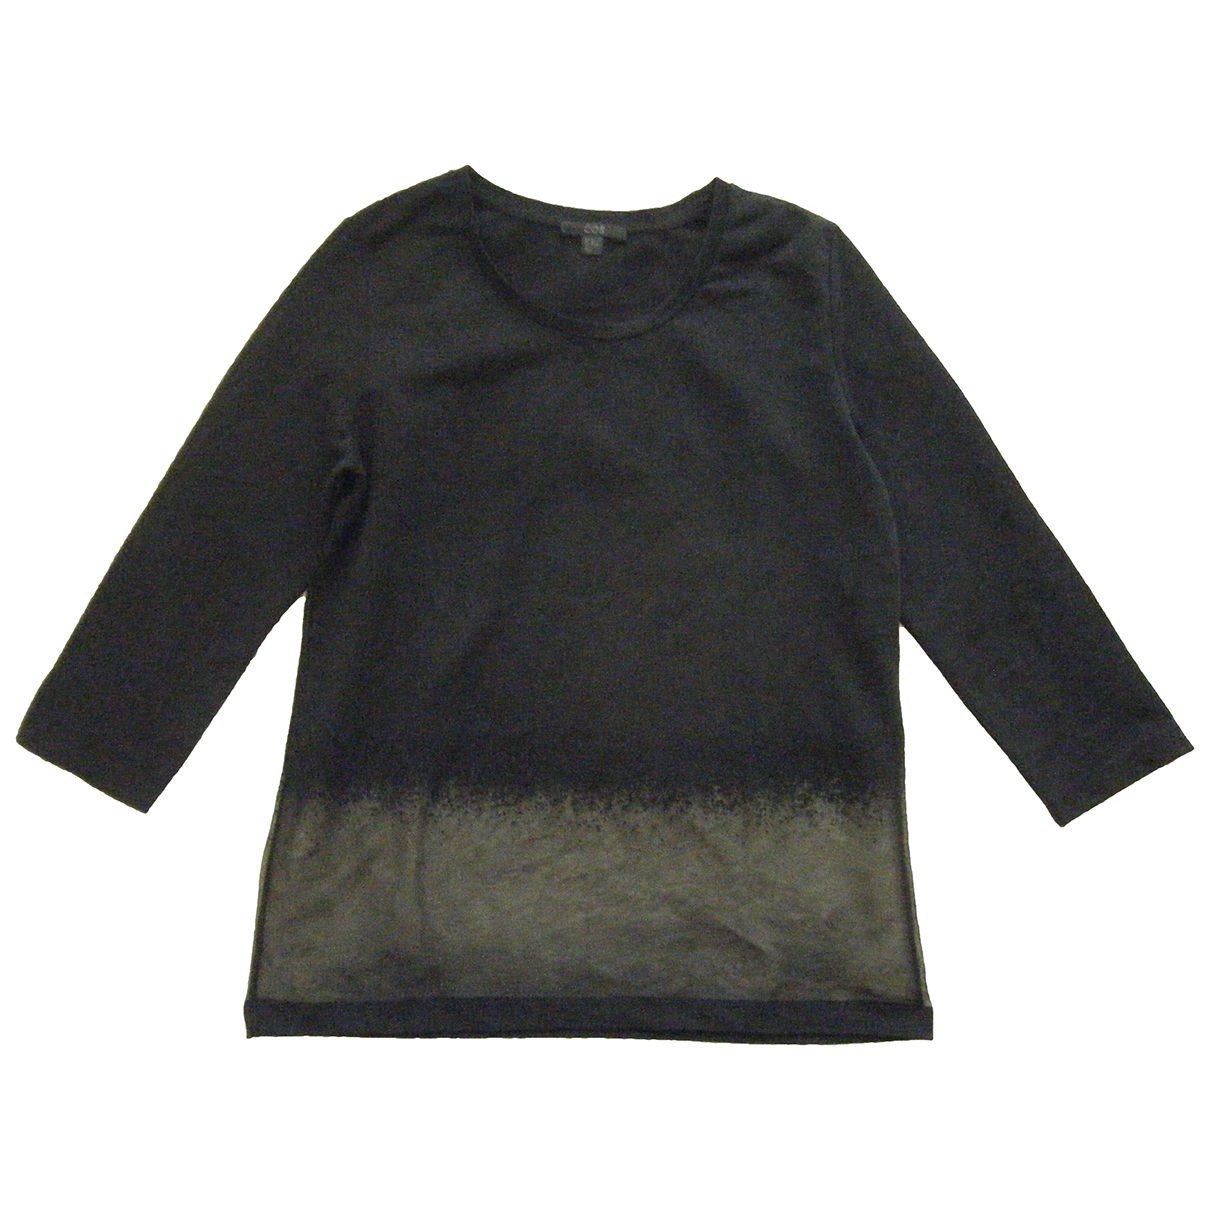 Cos \N Black Cotton  top for Women 36 FR